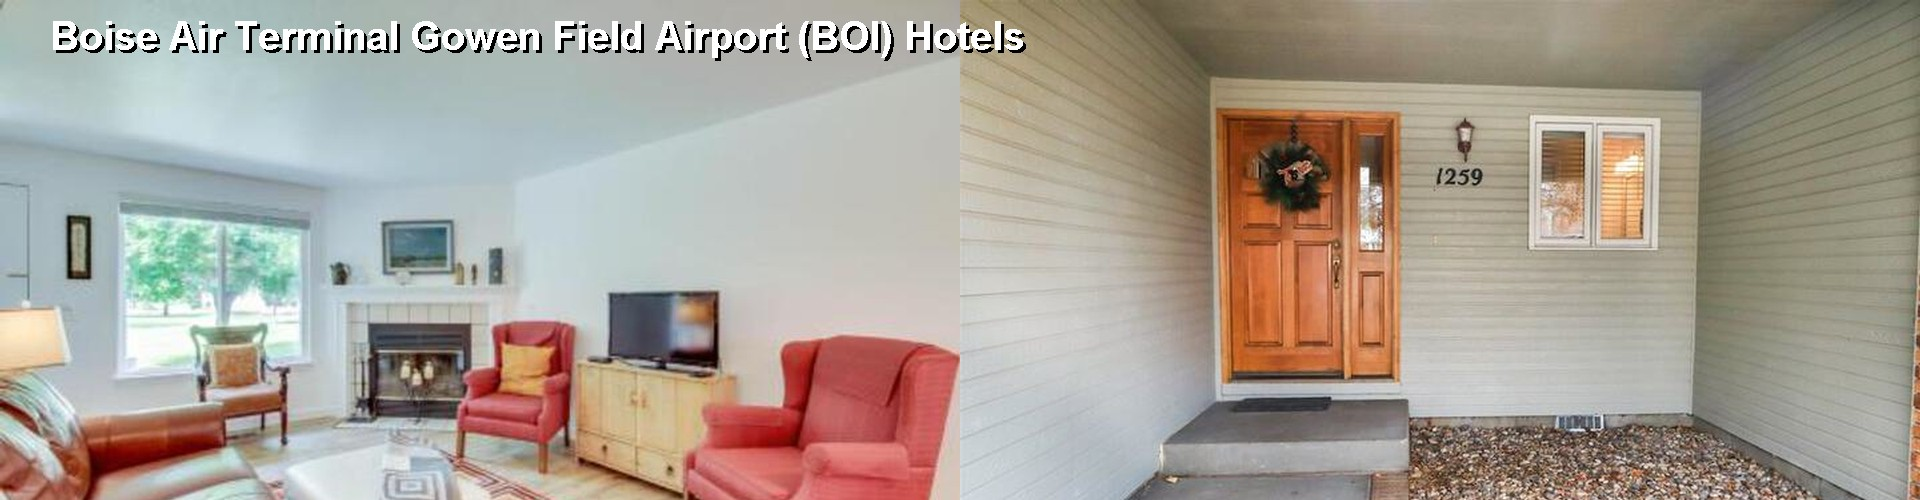 $53+ Hotels Near Boise Air Terminal Gowen Field Airport (BOI) (ID) ✈